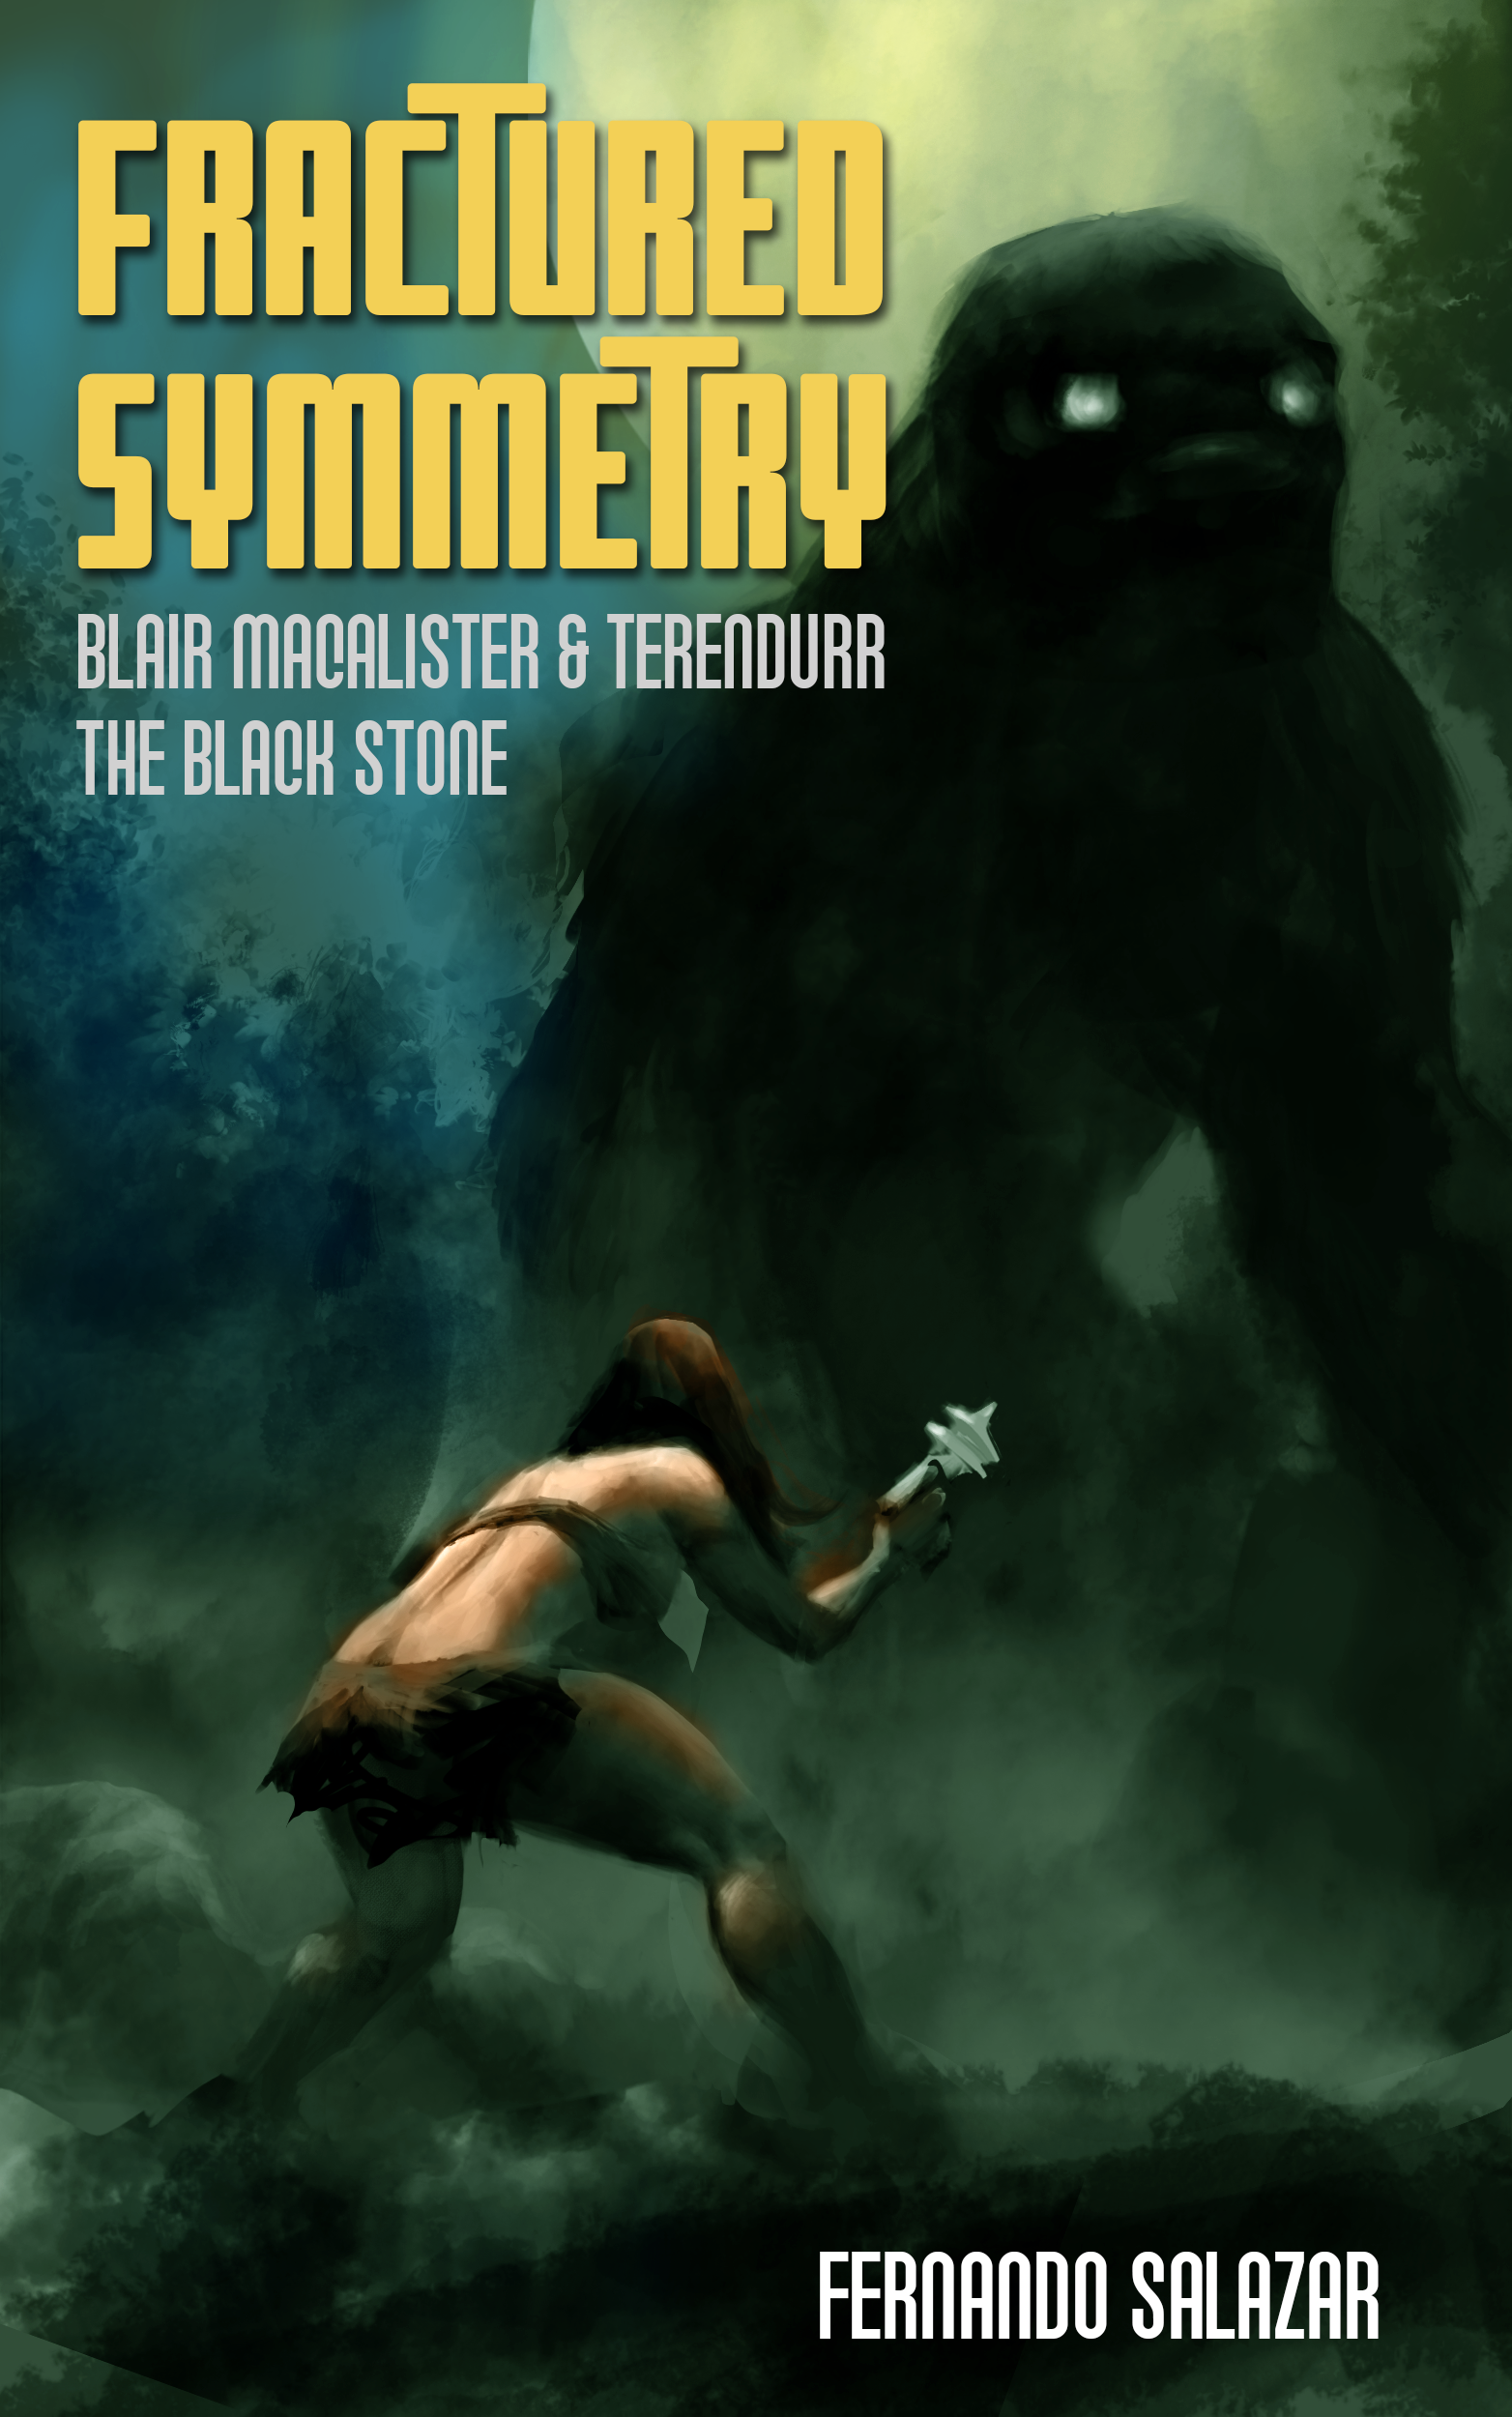 70s-Style cool SF book cover